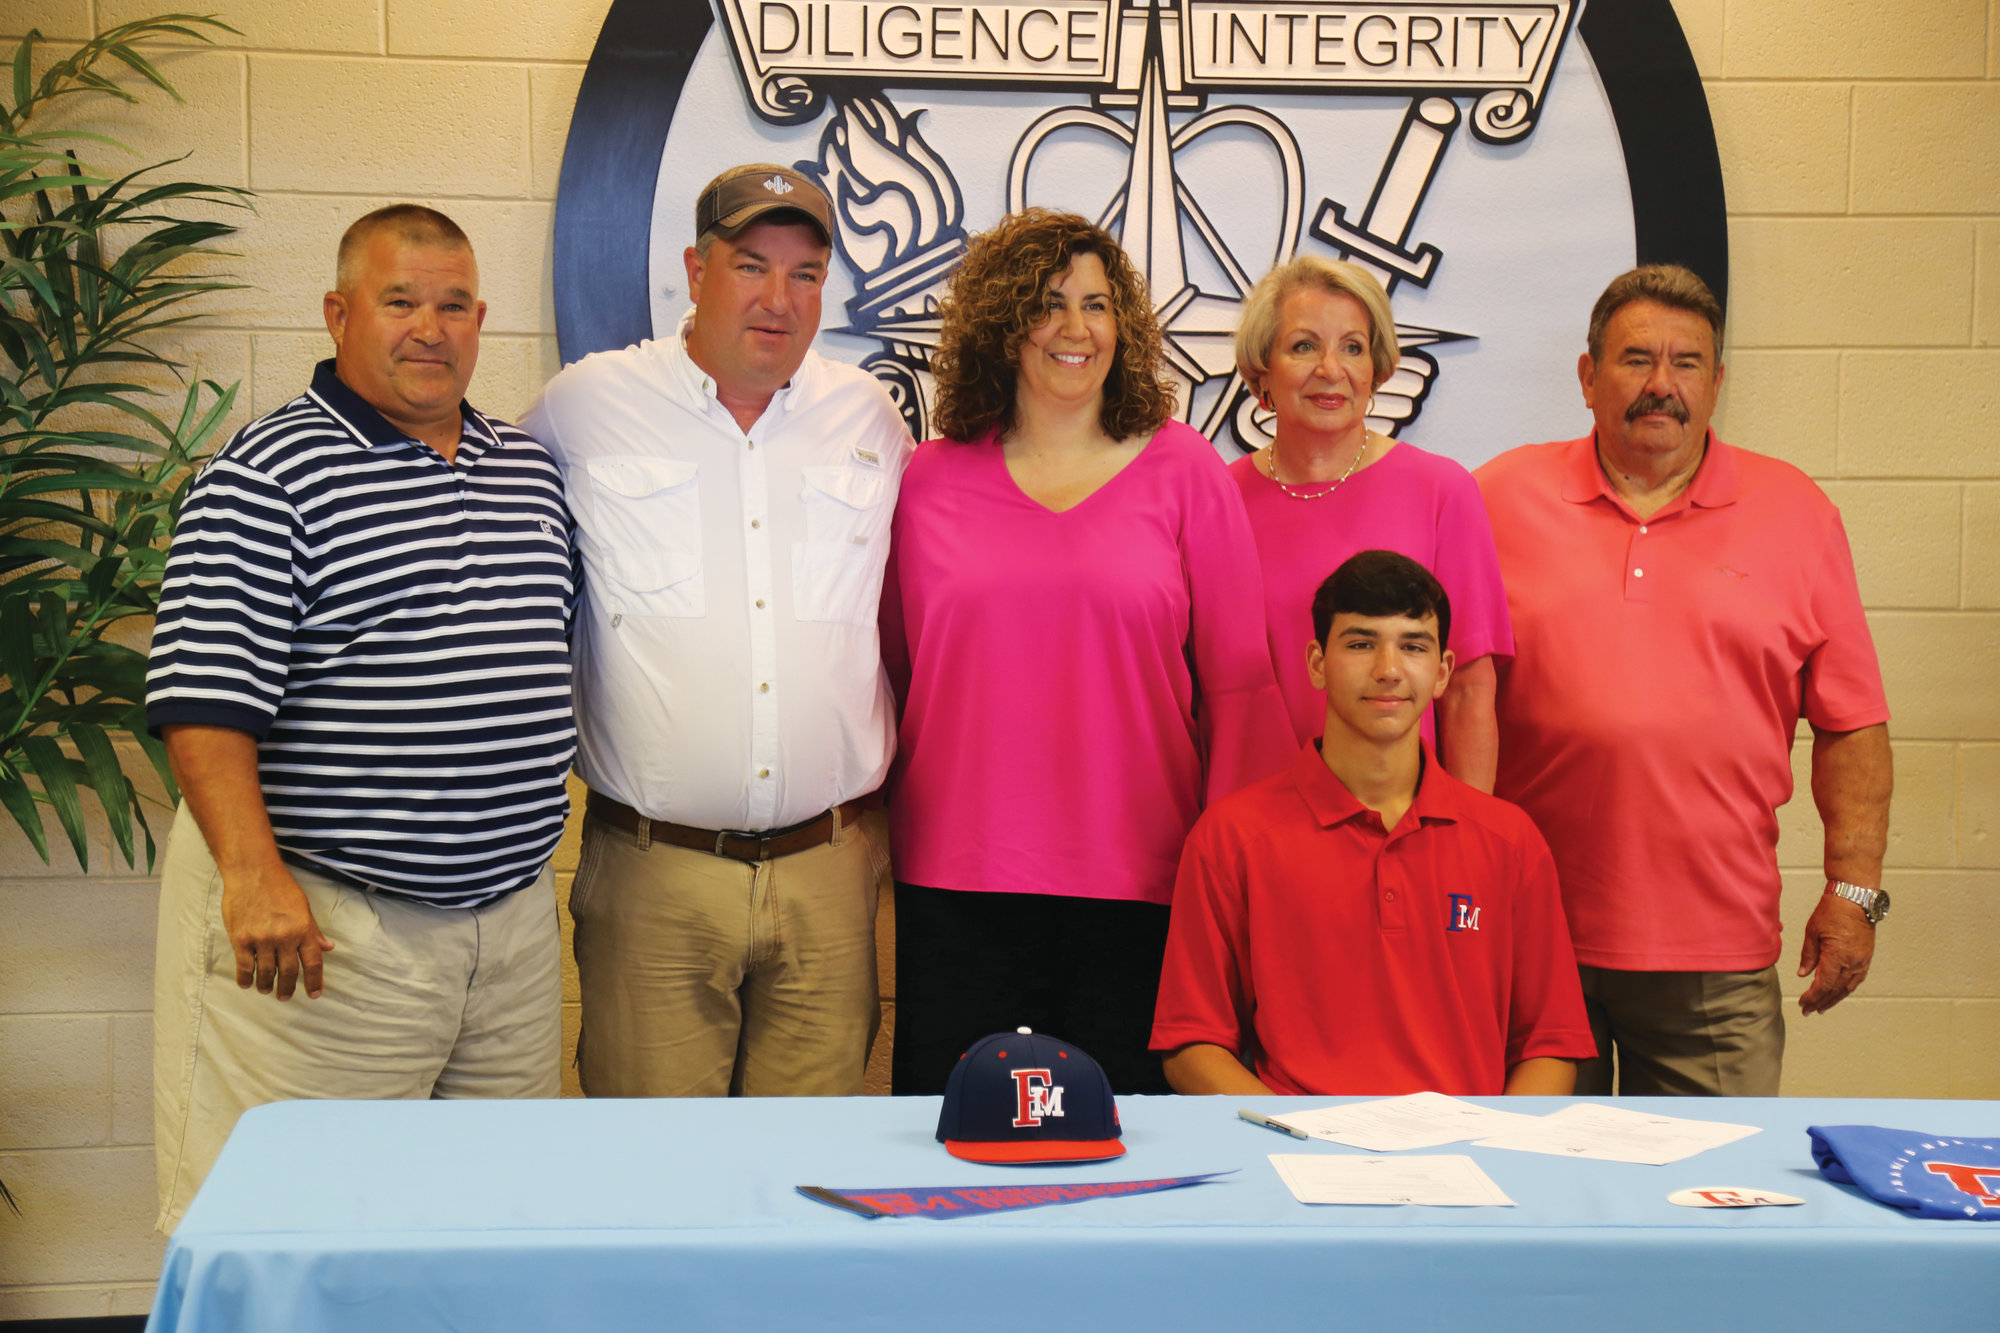 Surrounded by family and his coach, Wilson Hall's Tanner Epps signed on to play baseball at Francis Marion University during a signing ceremony at the school on Tuesday.